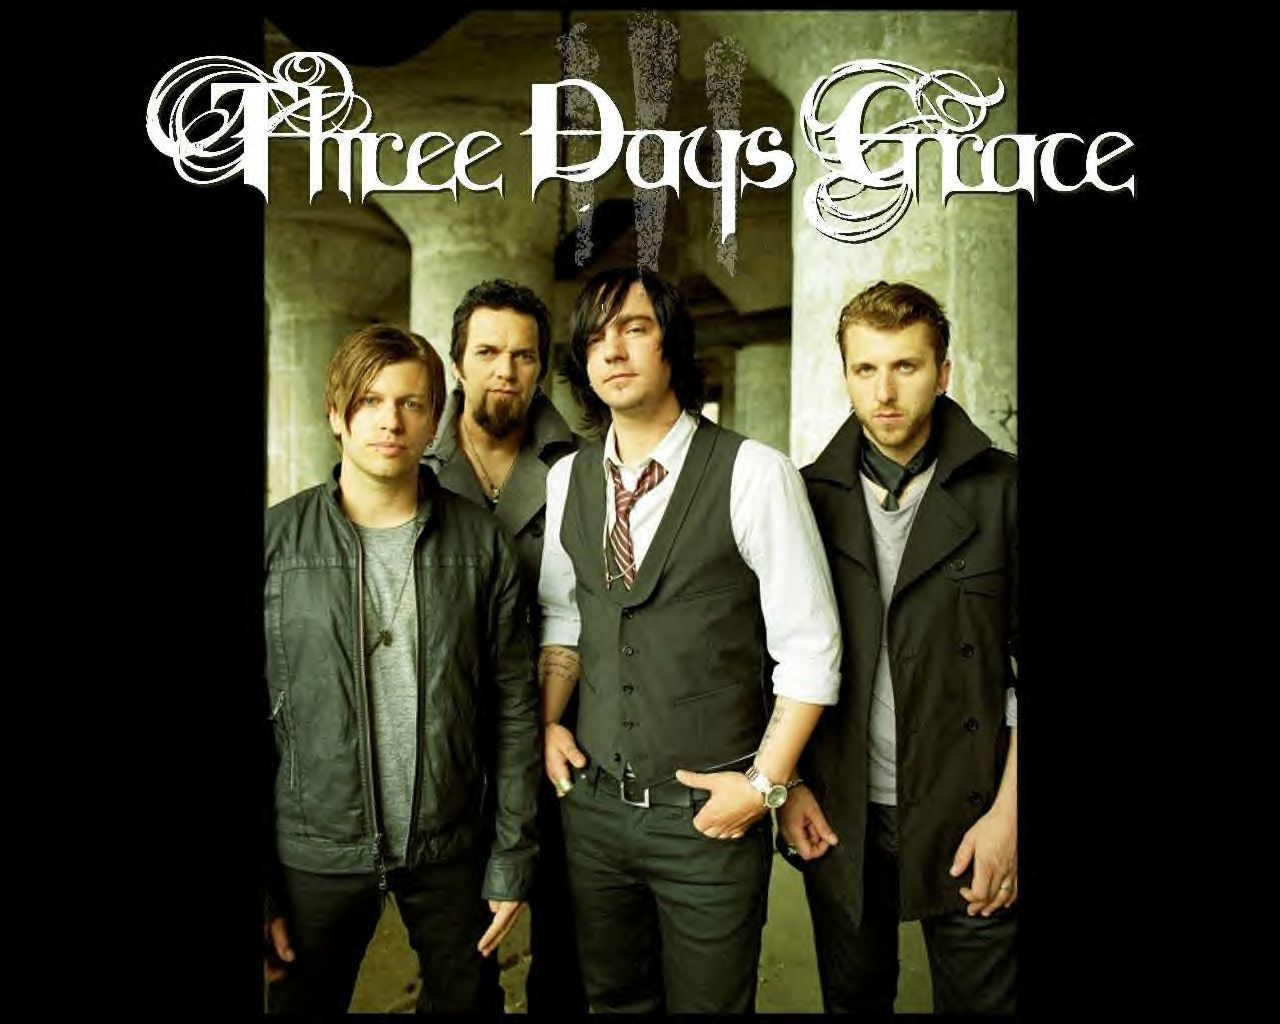 three days grace image 2011 wallpaper hd for backgrounds 2873 1280x1024